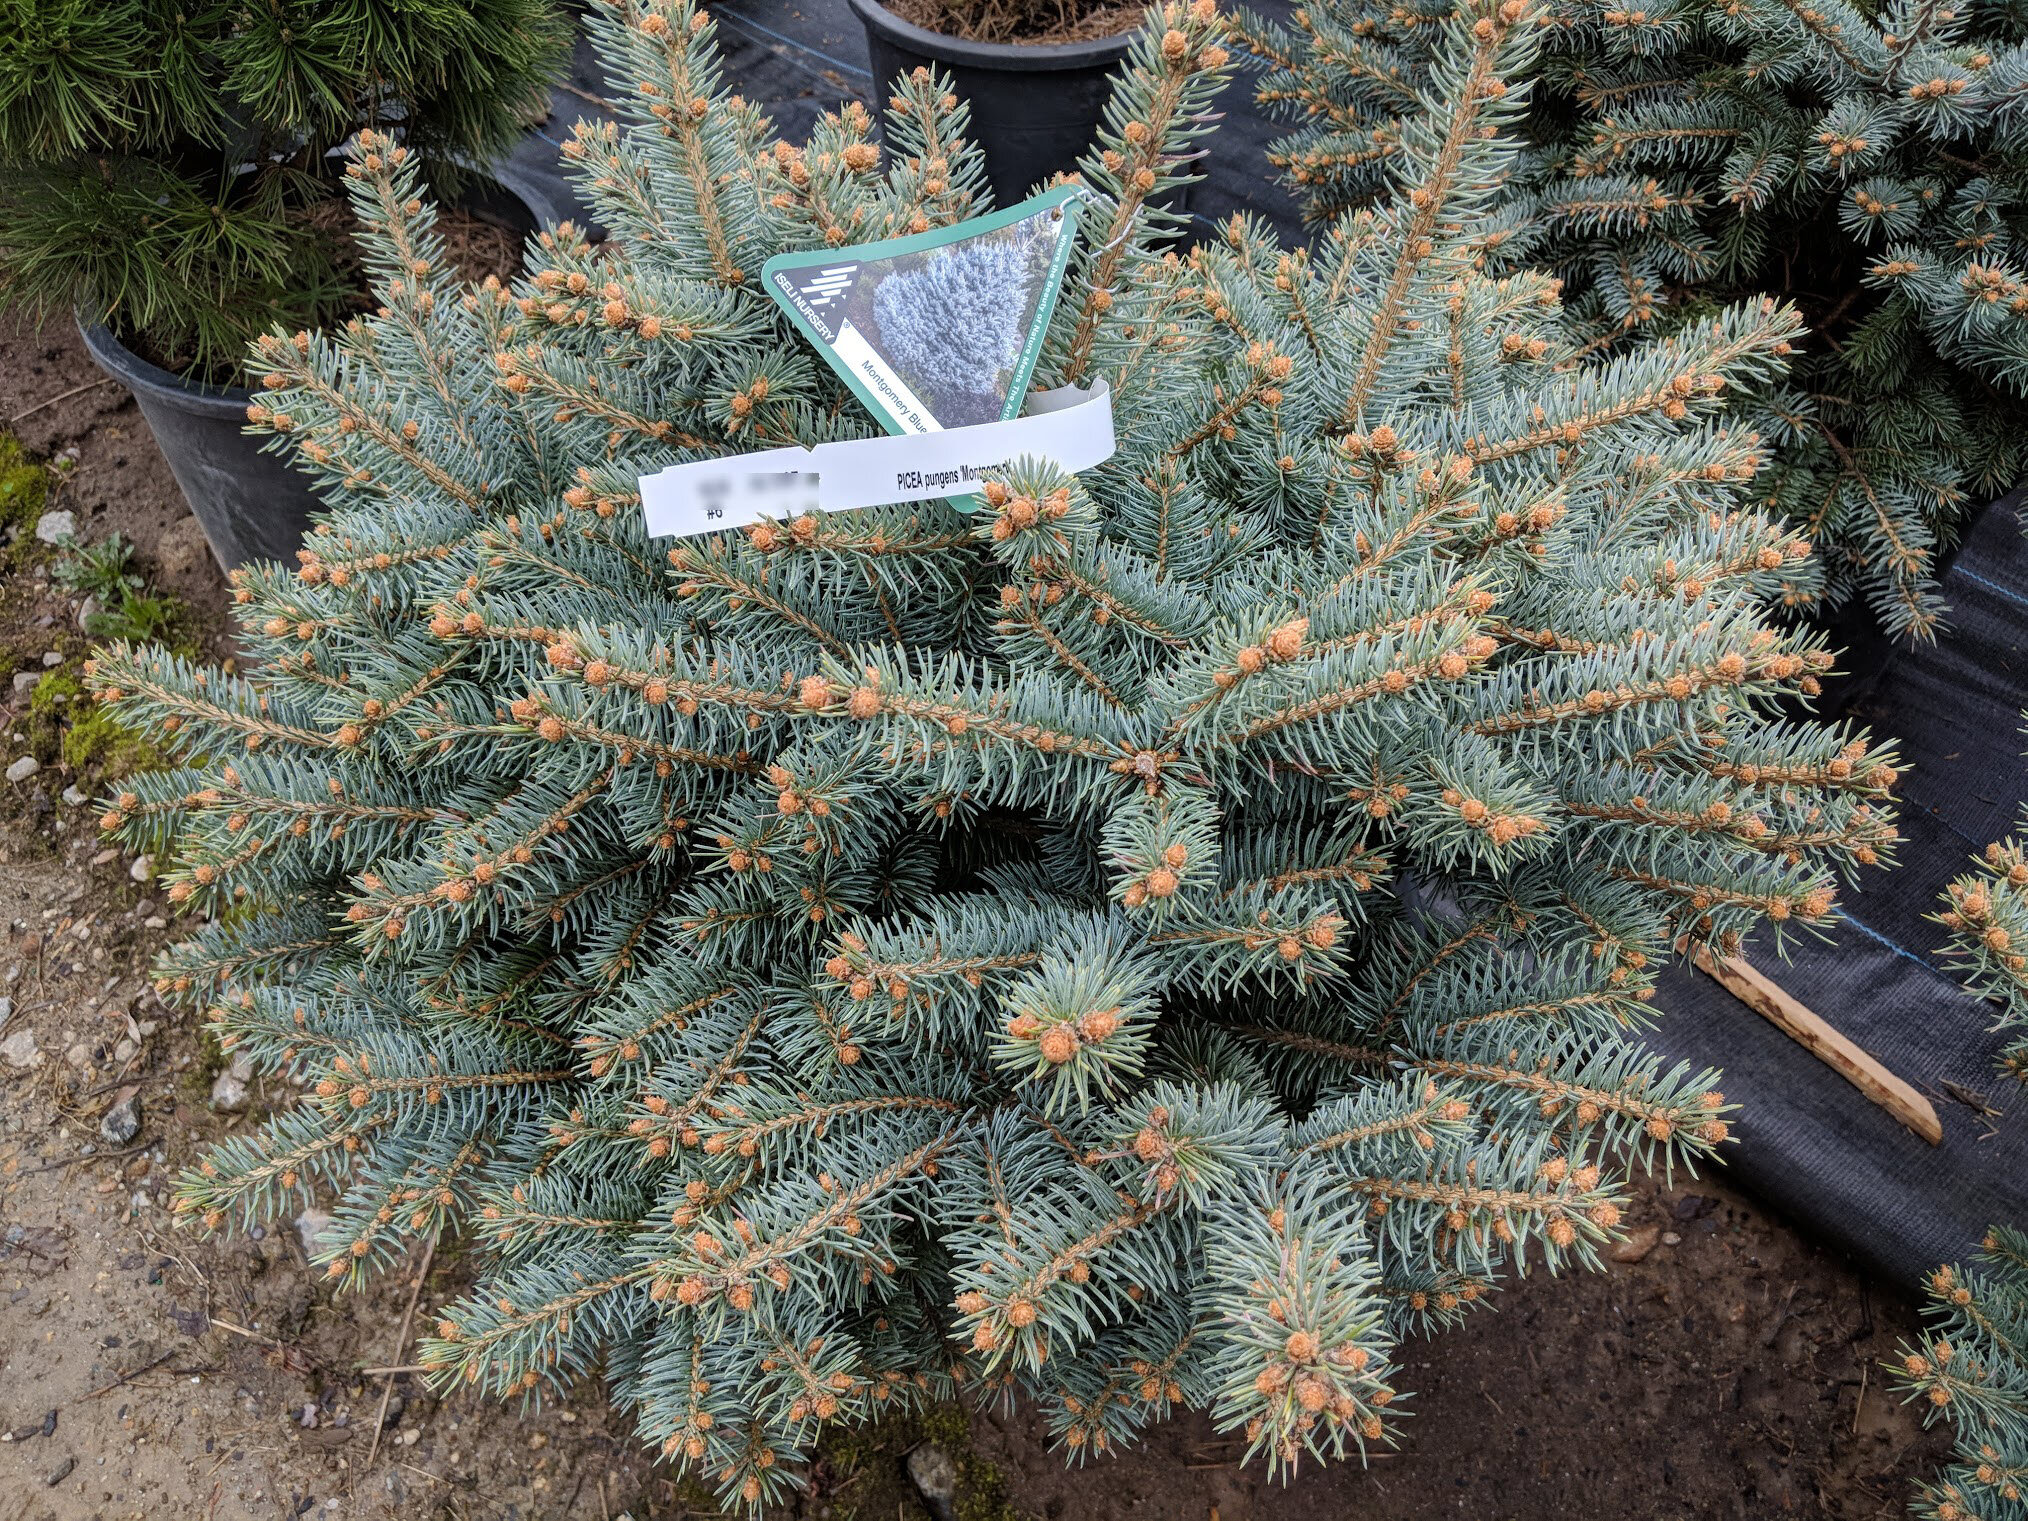 Blue spruce for color